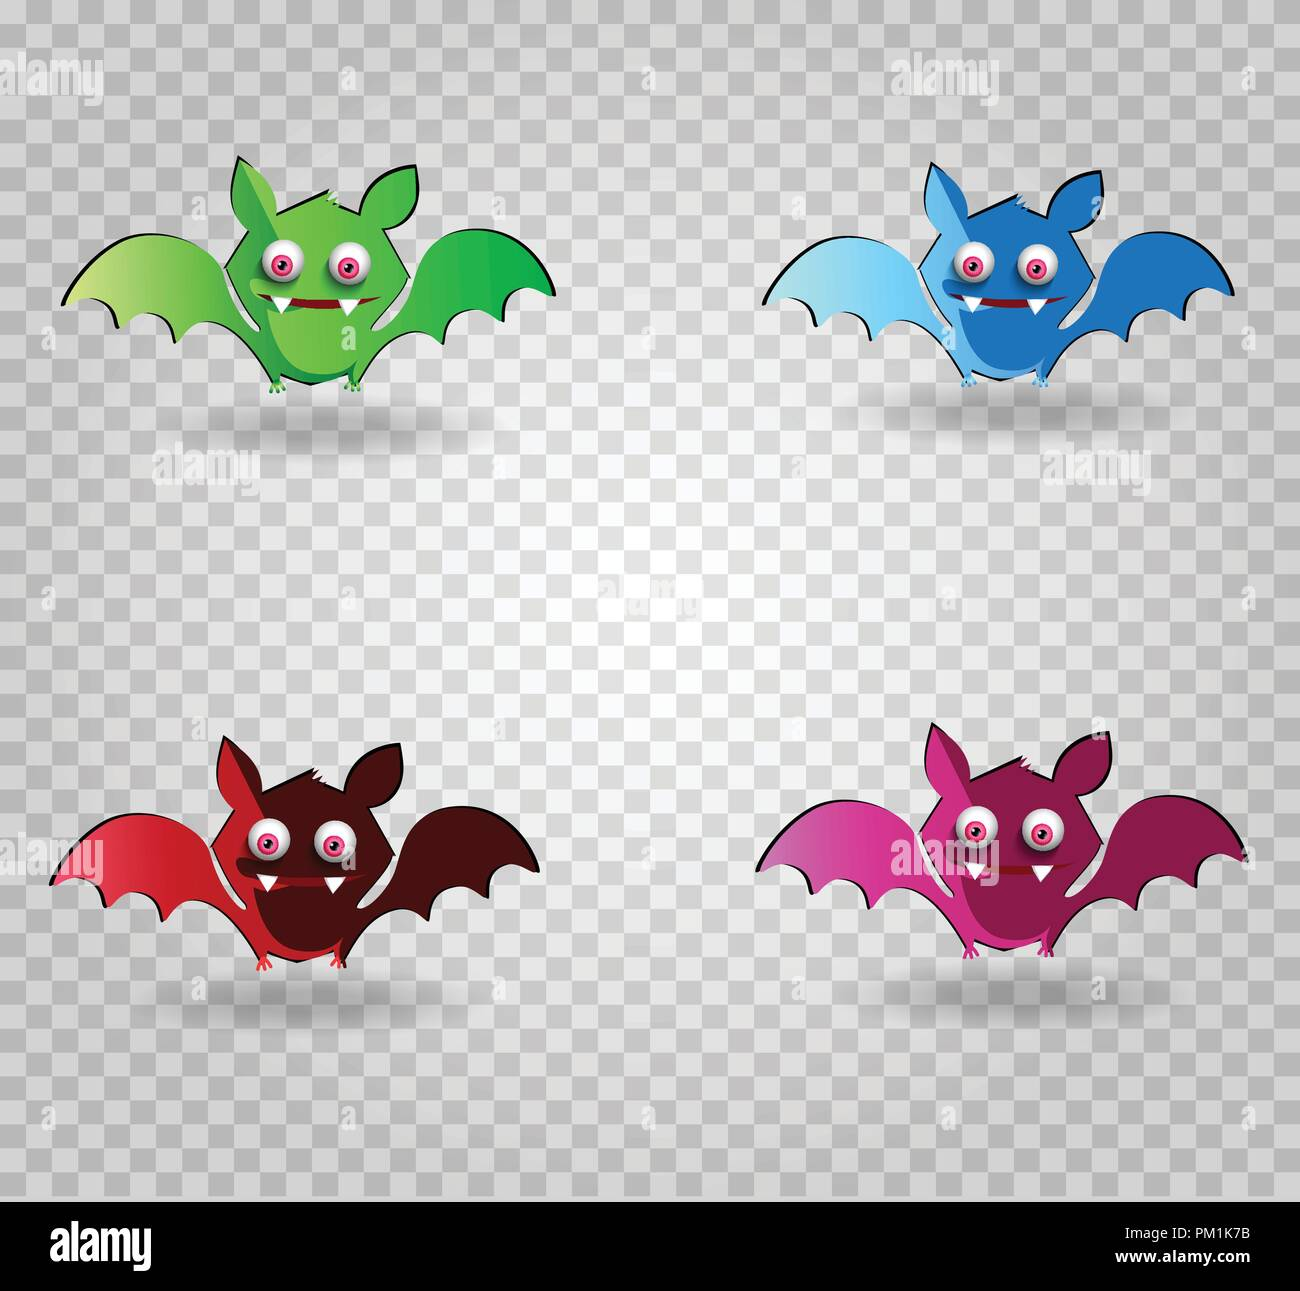 Vector set of cute funny multi colored smiling bats. Green, blue, purple, red bat characters on transparent background. Halloween digital design eleme - Stock Vector